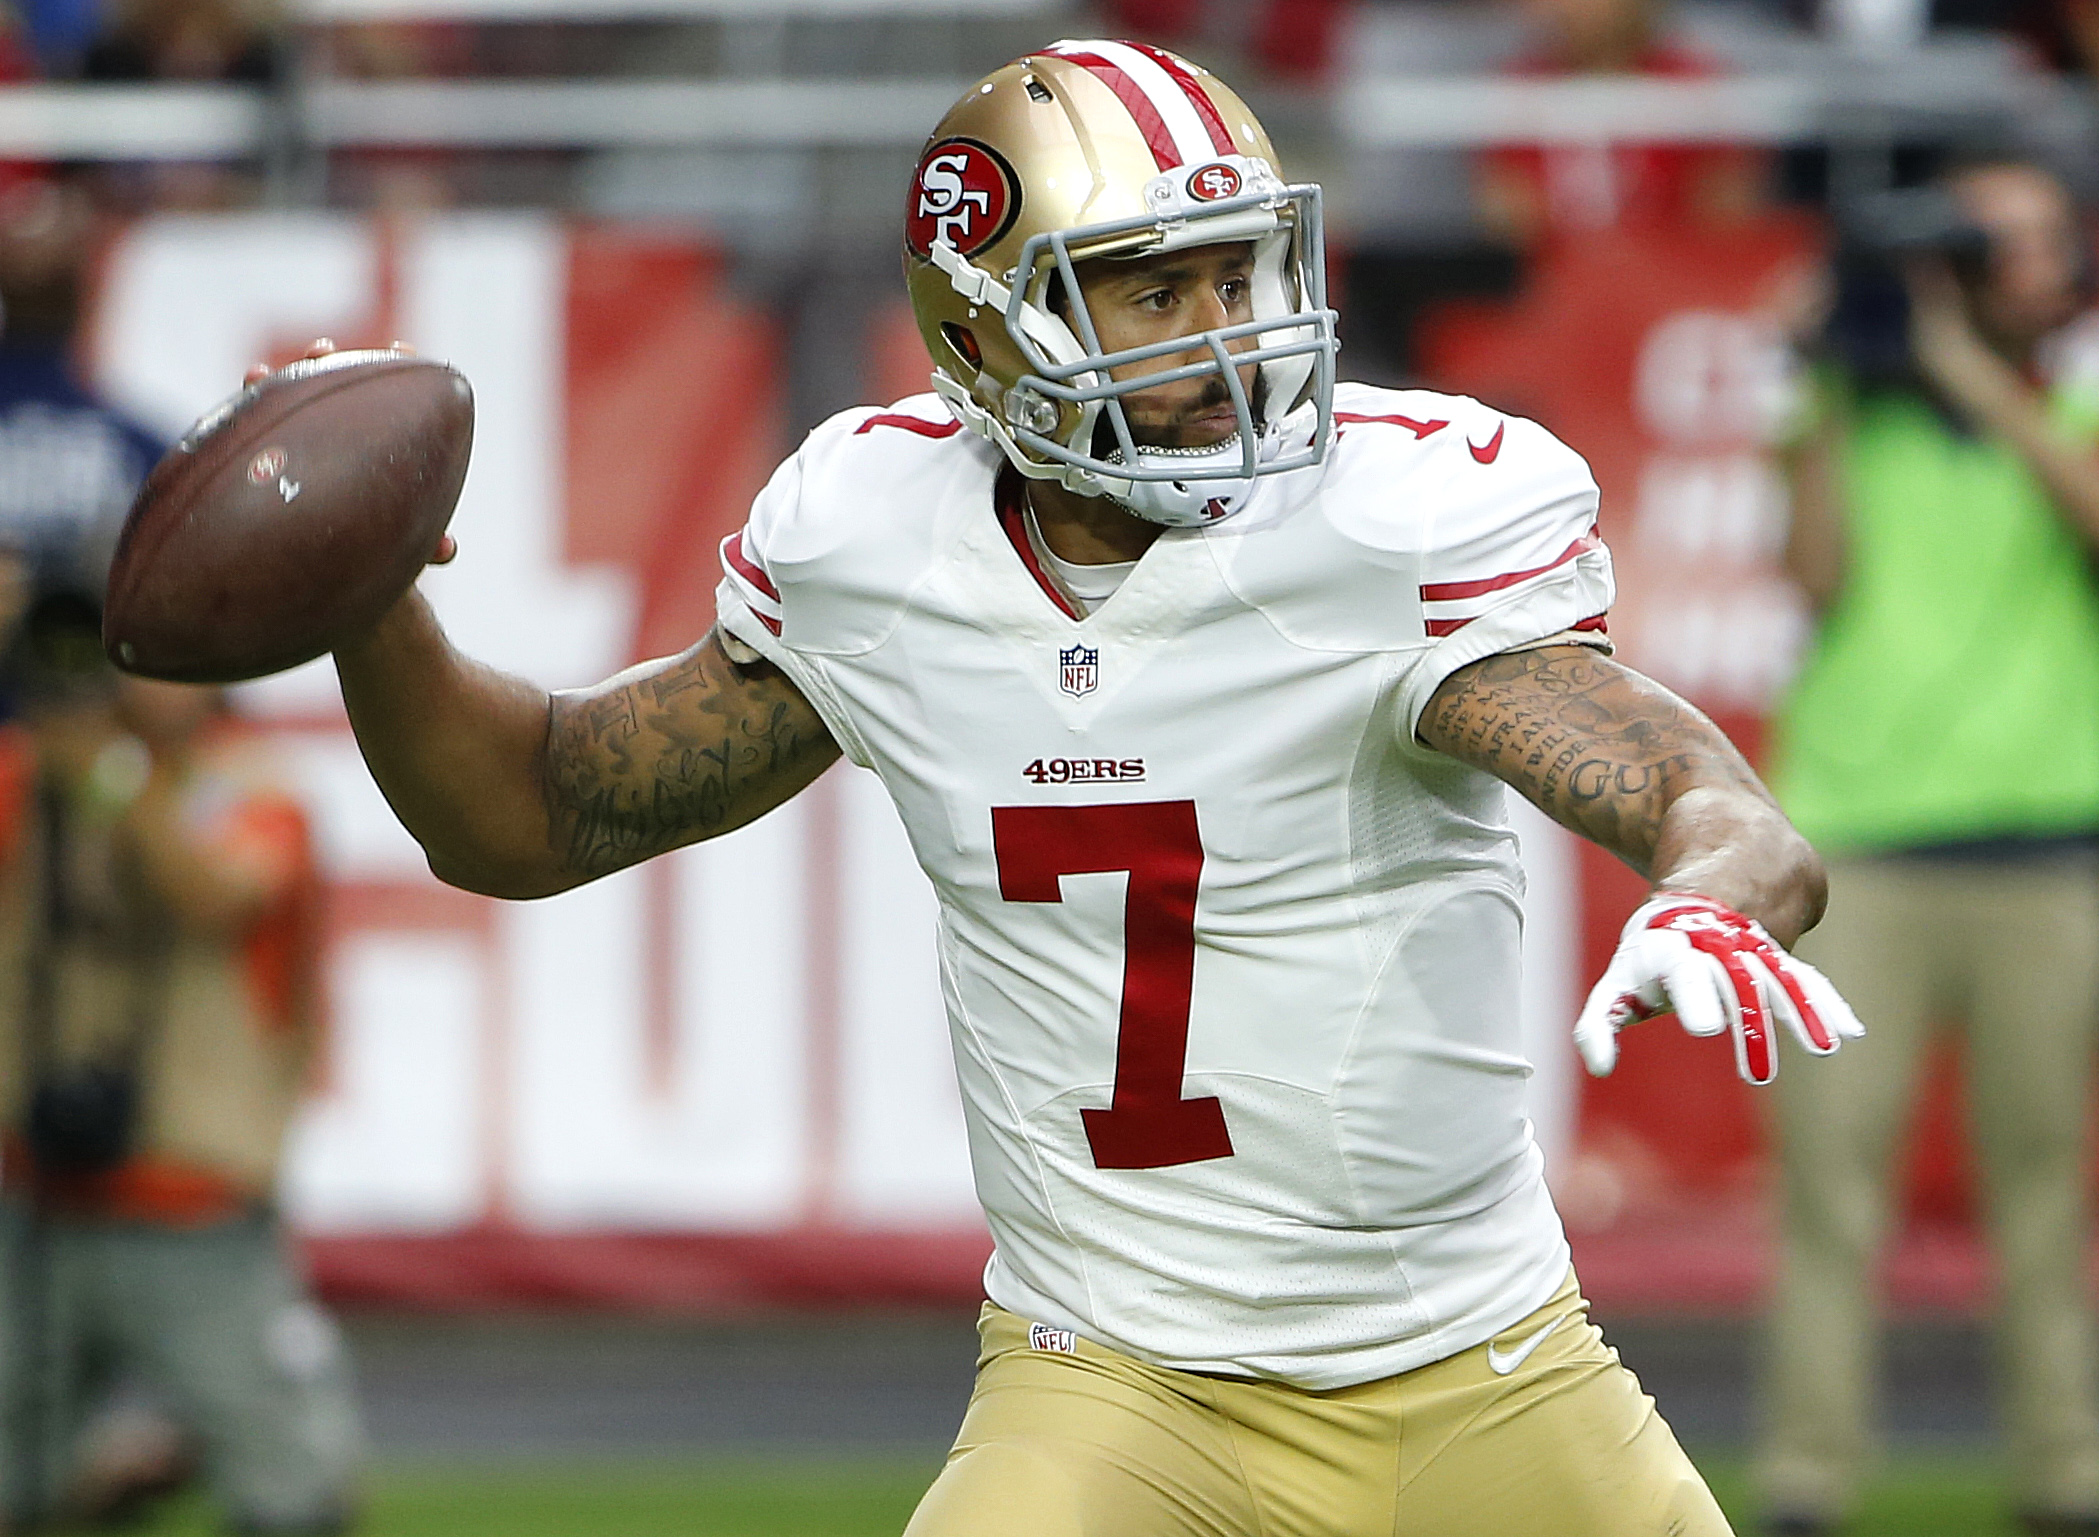 San Francisco 49ers quarterback Colin Kaepernick (7) looks to pass during the first half of an NFL football game against the Arizona Cardinals, Sunday, Sept. 27, 2015, in Glendale, Ariz.  (AP Photo/Ross D. Franklin)